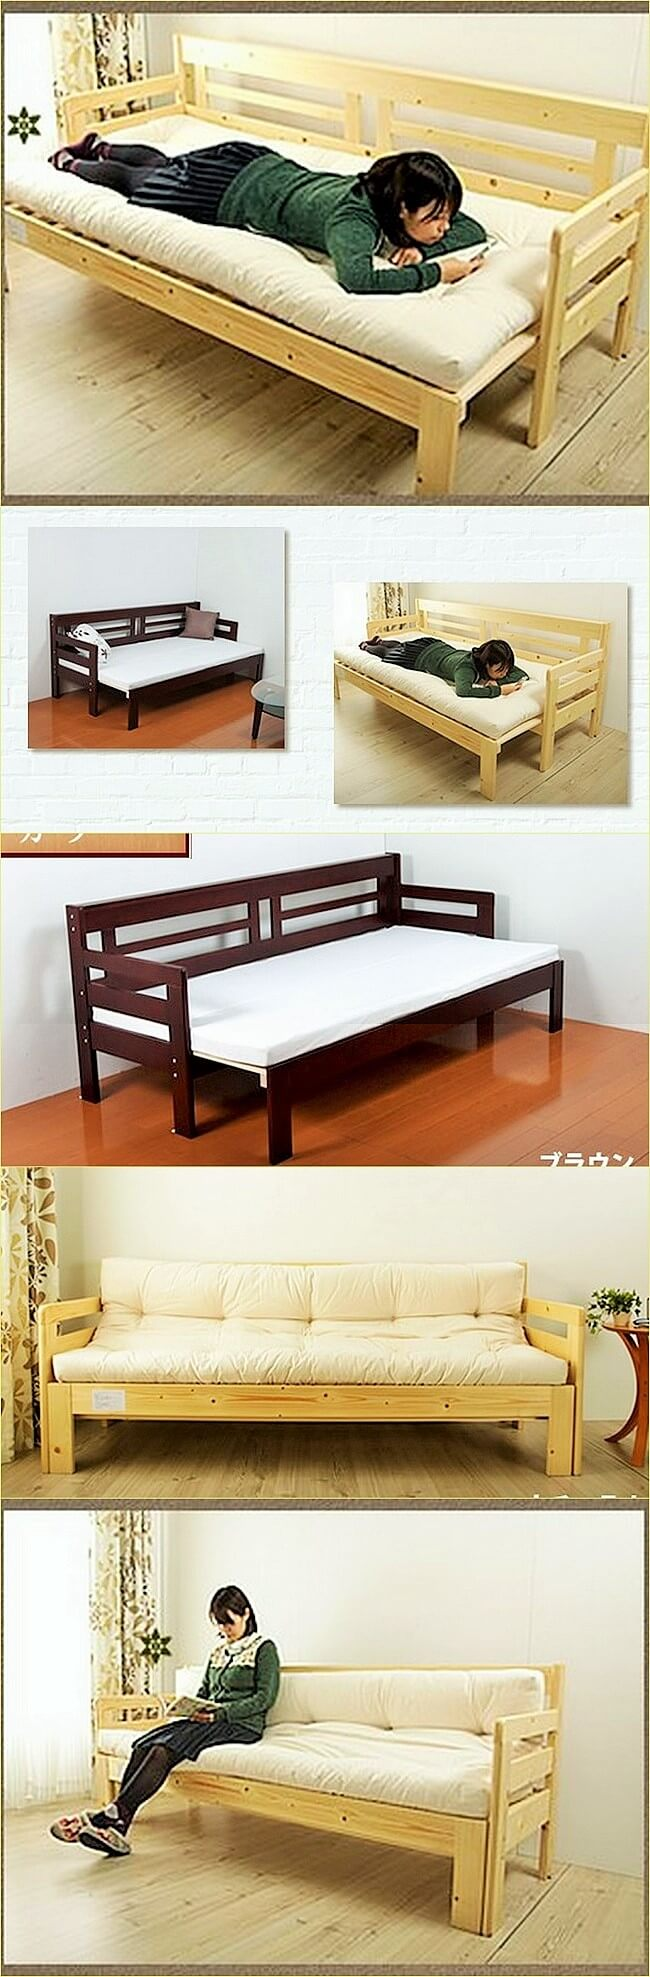 Painted-Pallet-Bench and Bed